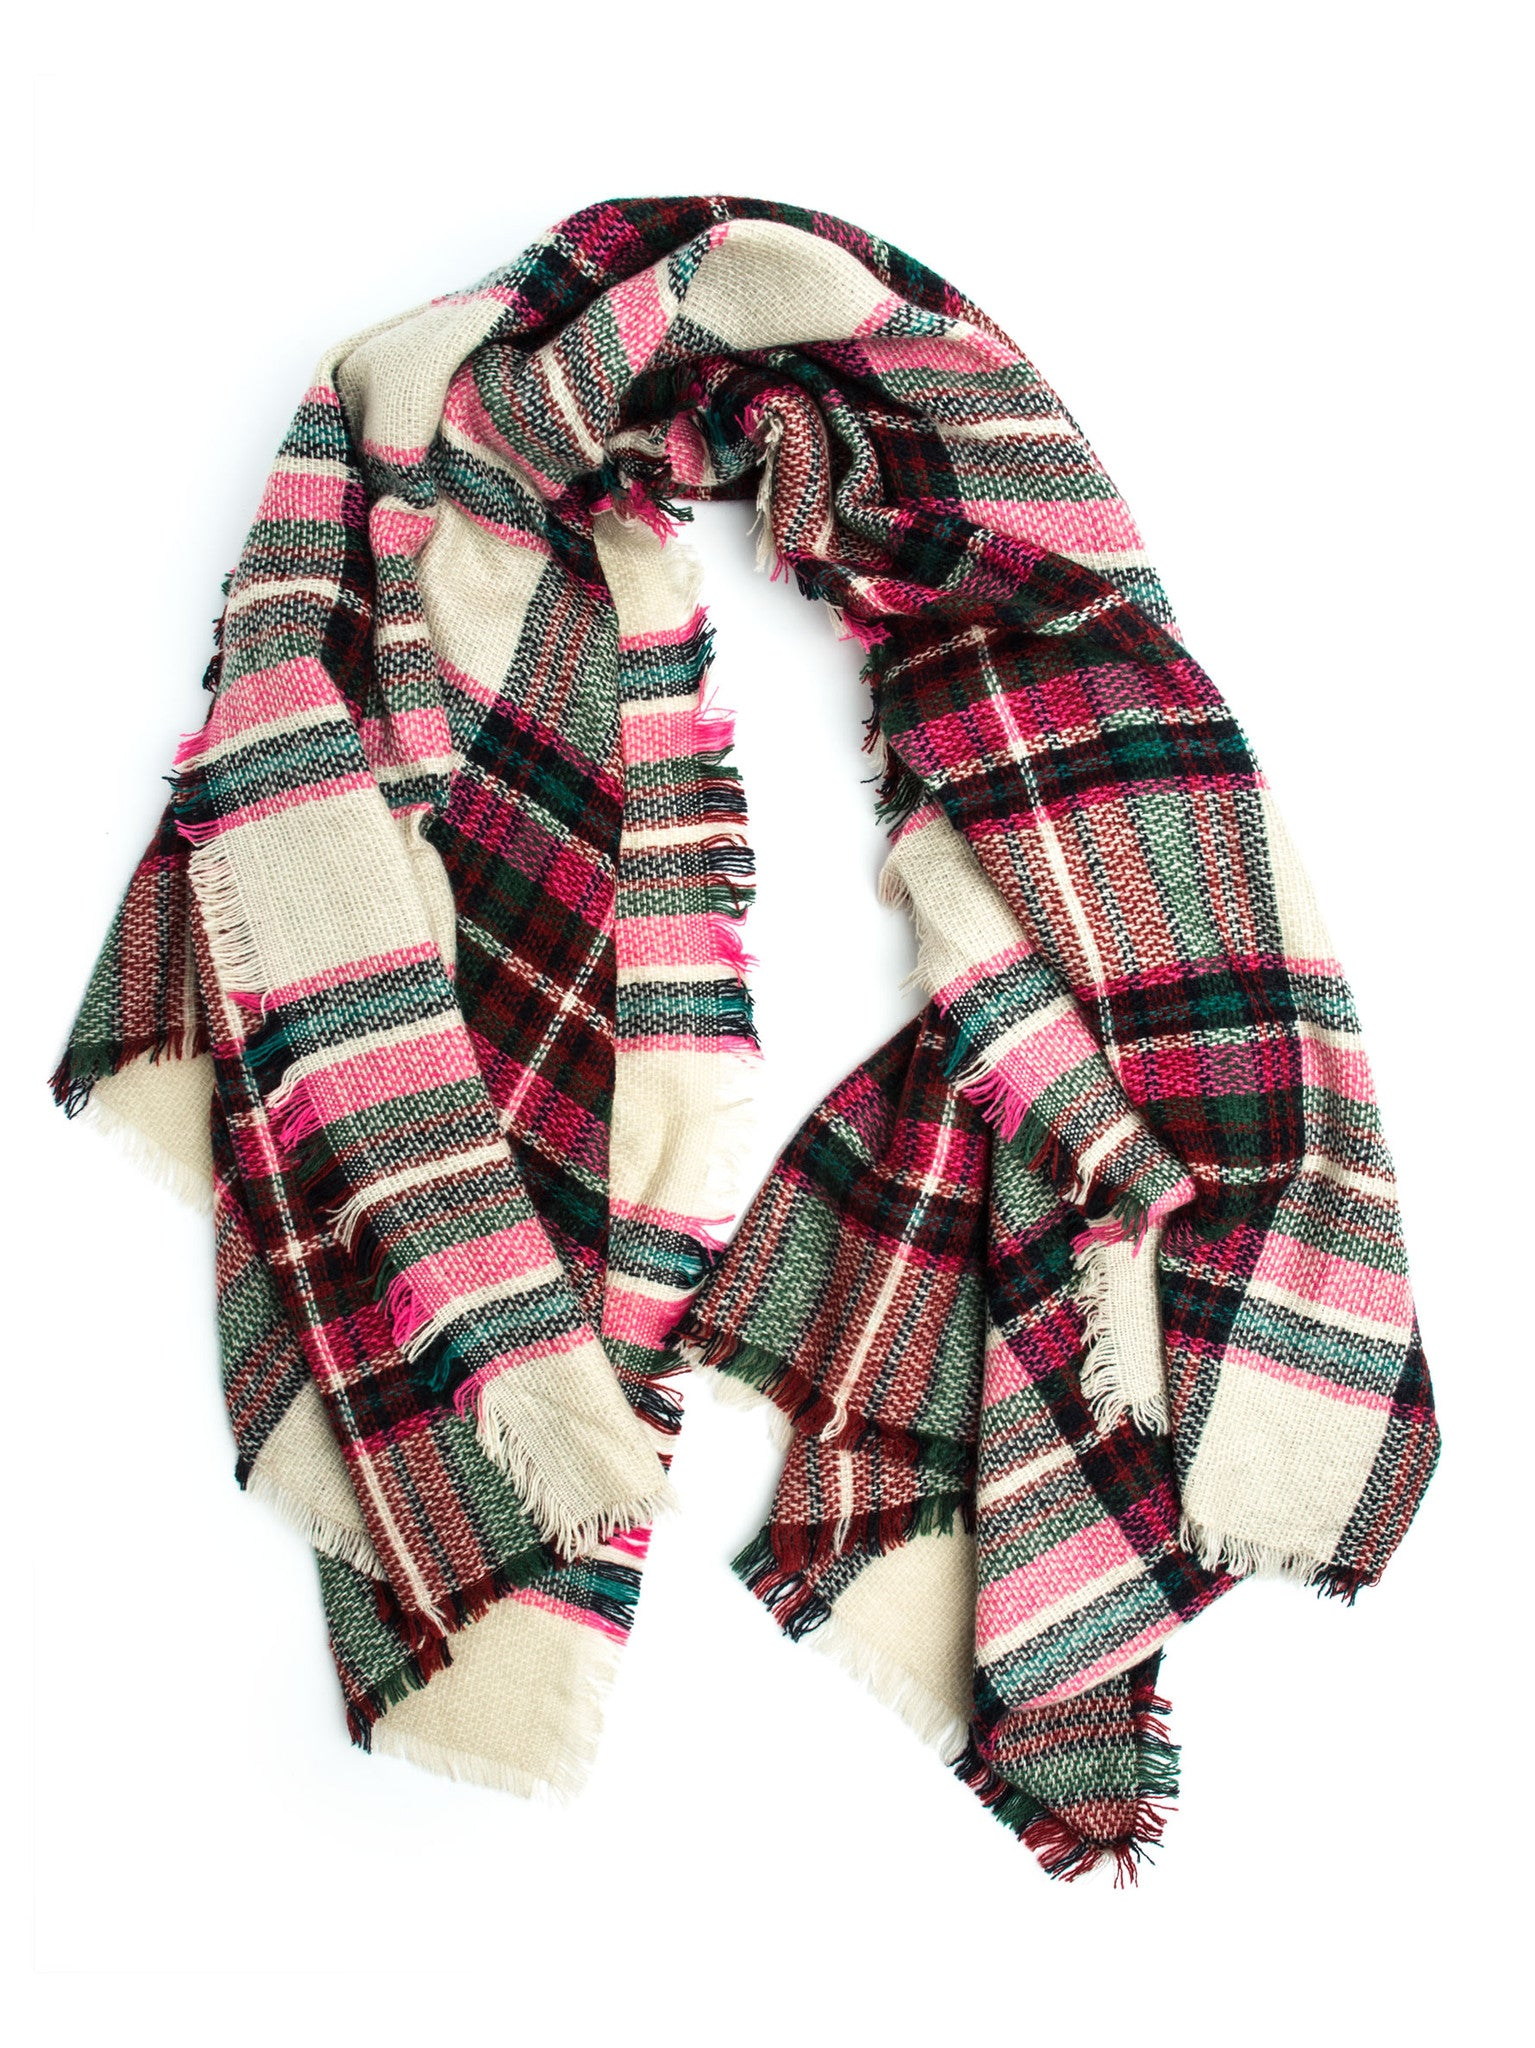 Scarves - Maddie Plaid Blanket Scarf or Shawl, Winter Scarf -() Bohomonde  - 2